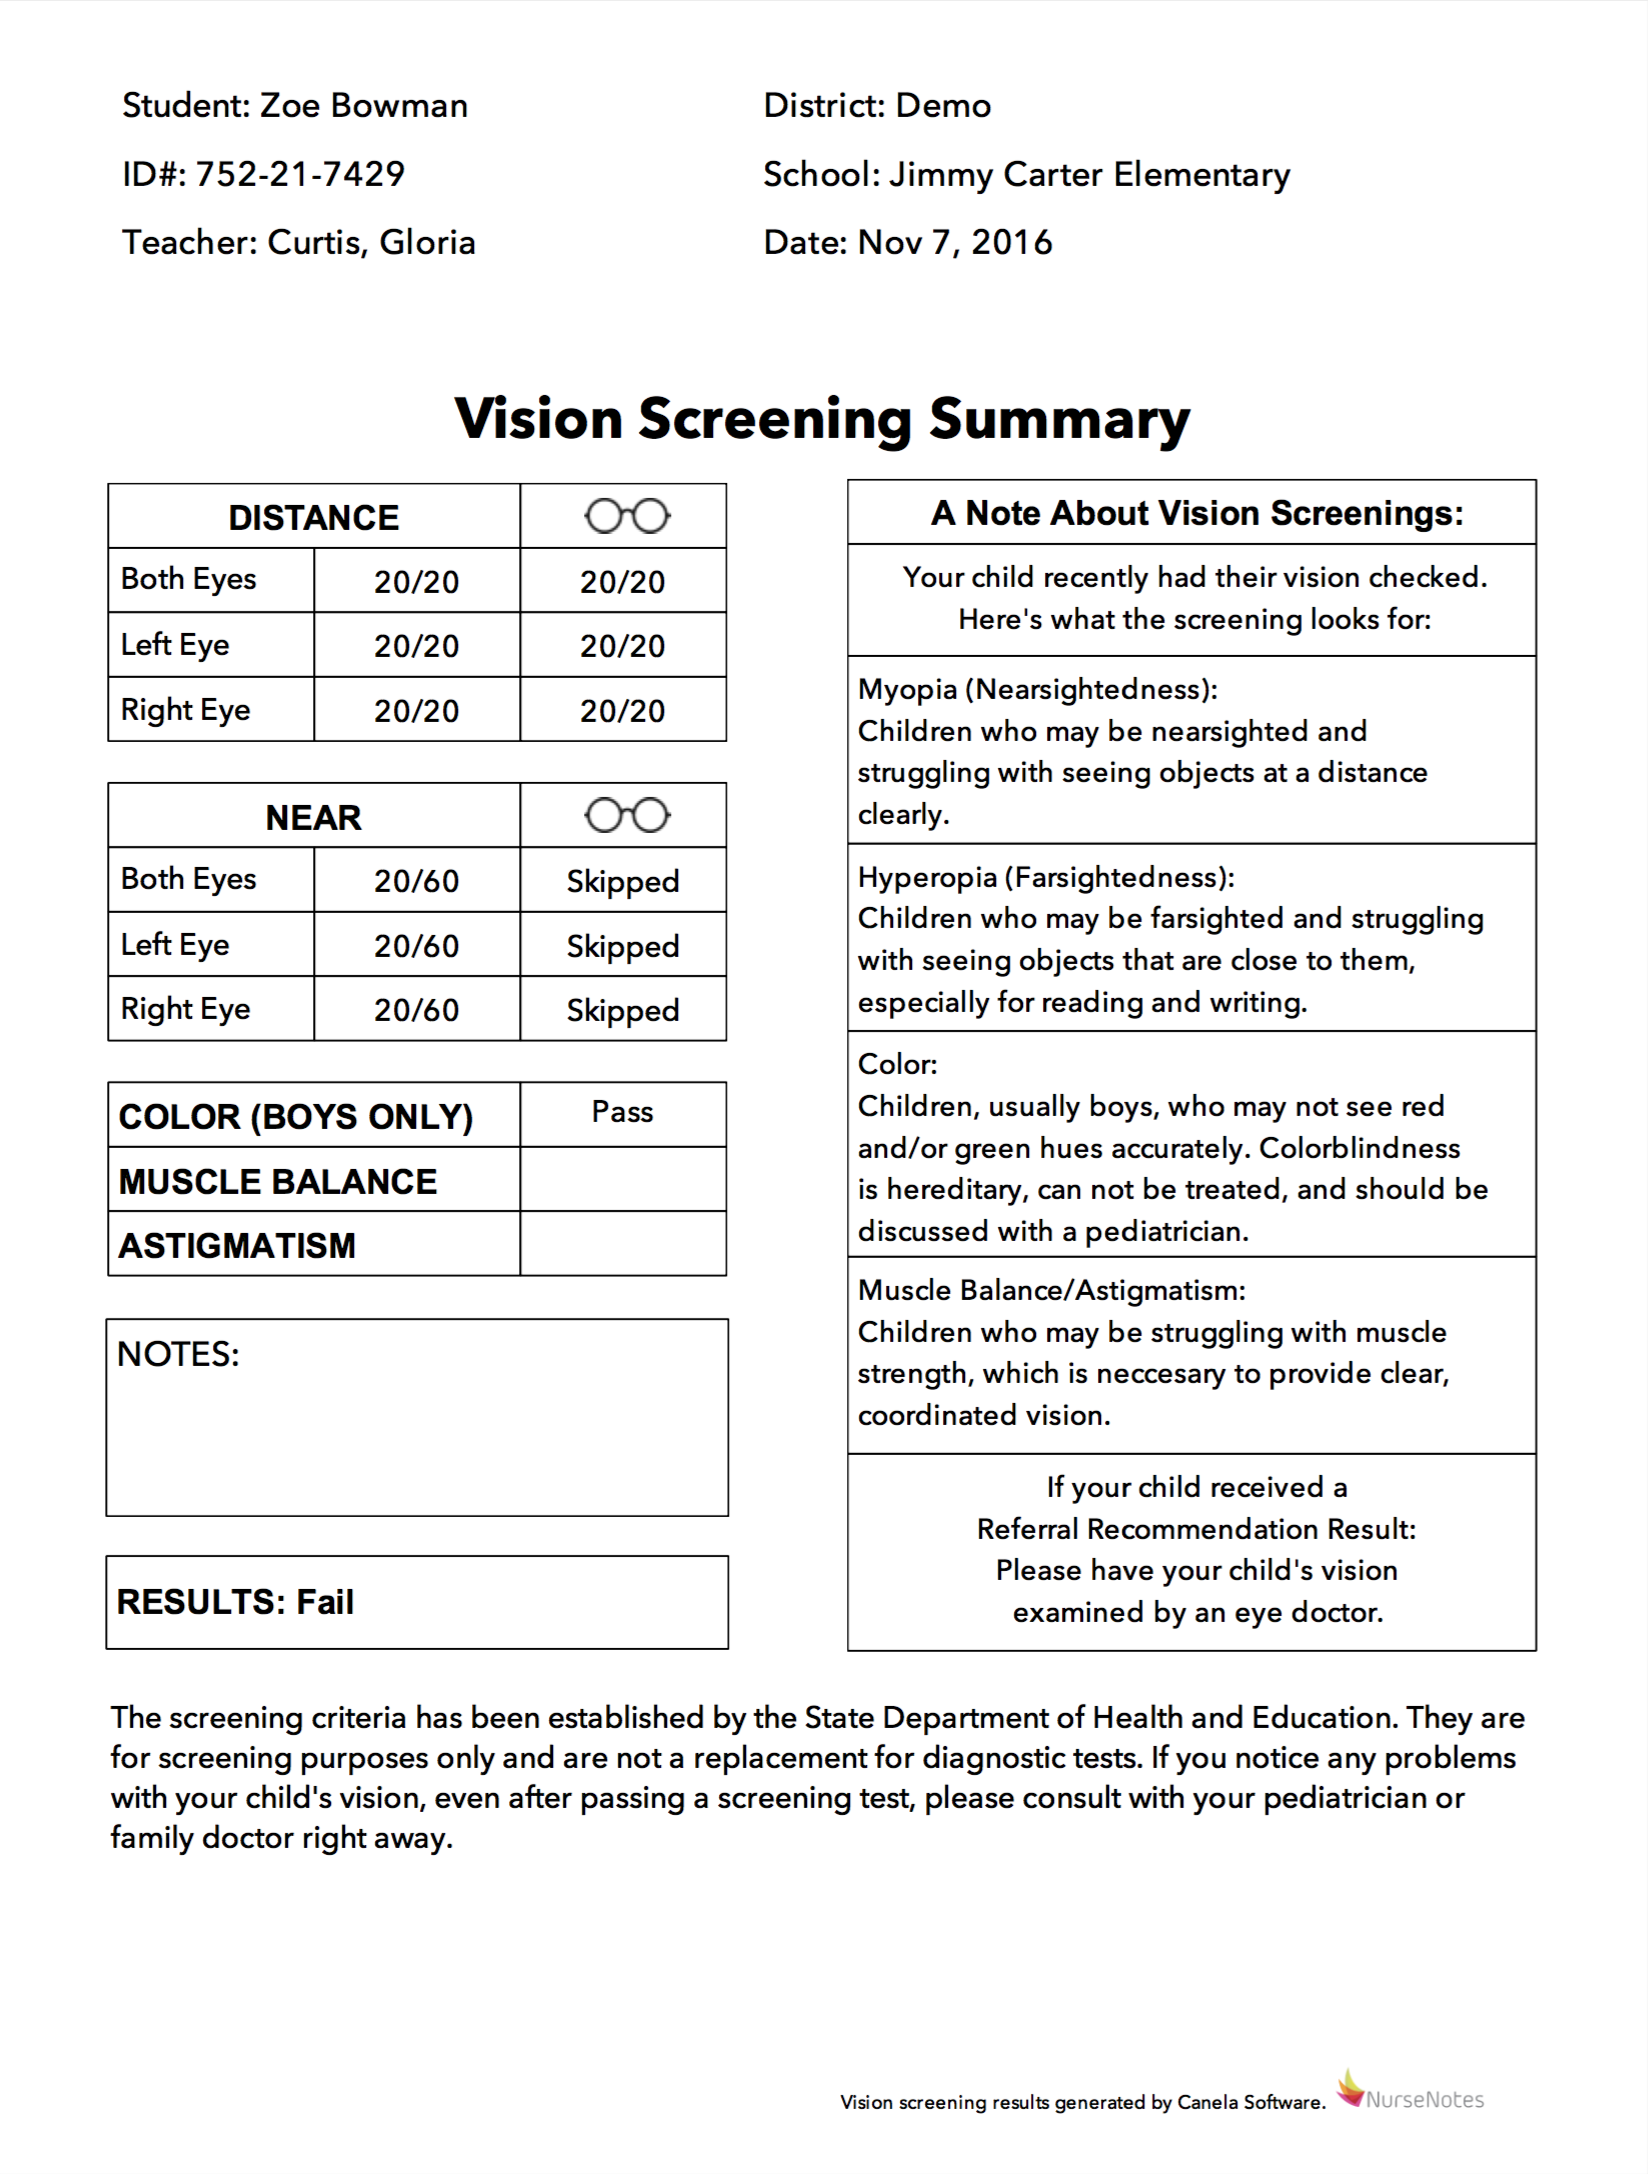 Vision Screening Summary